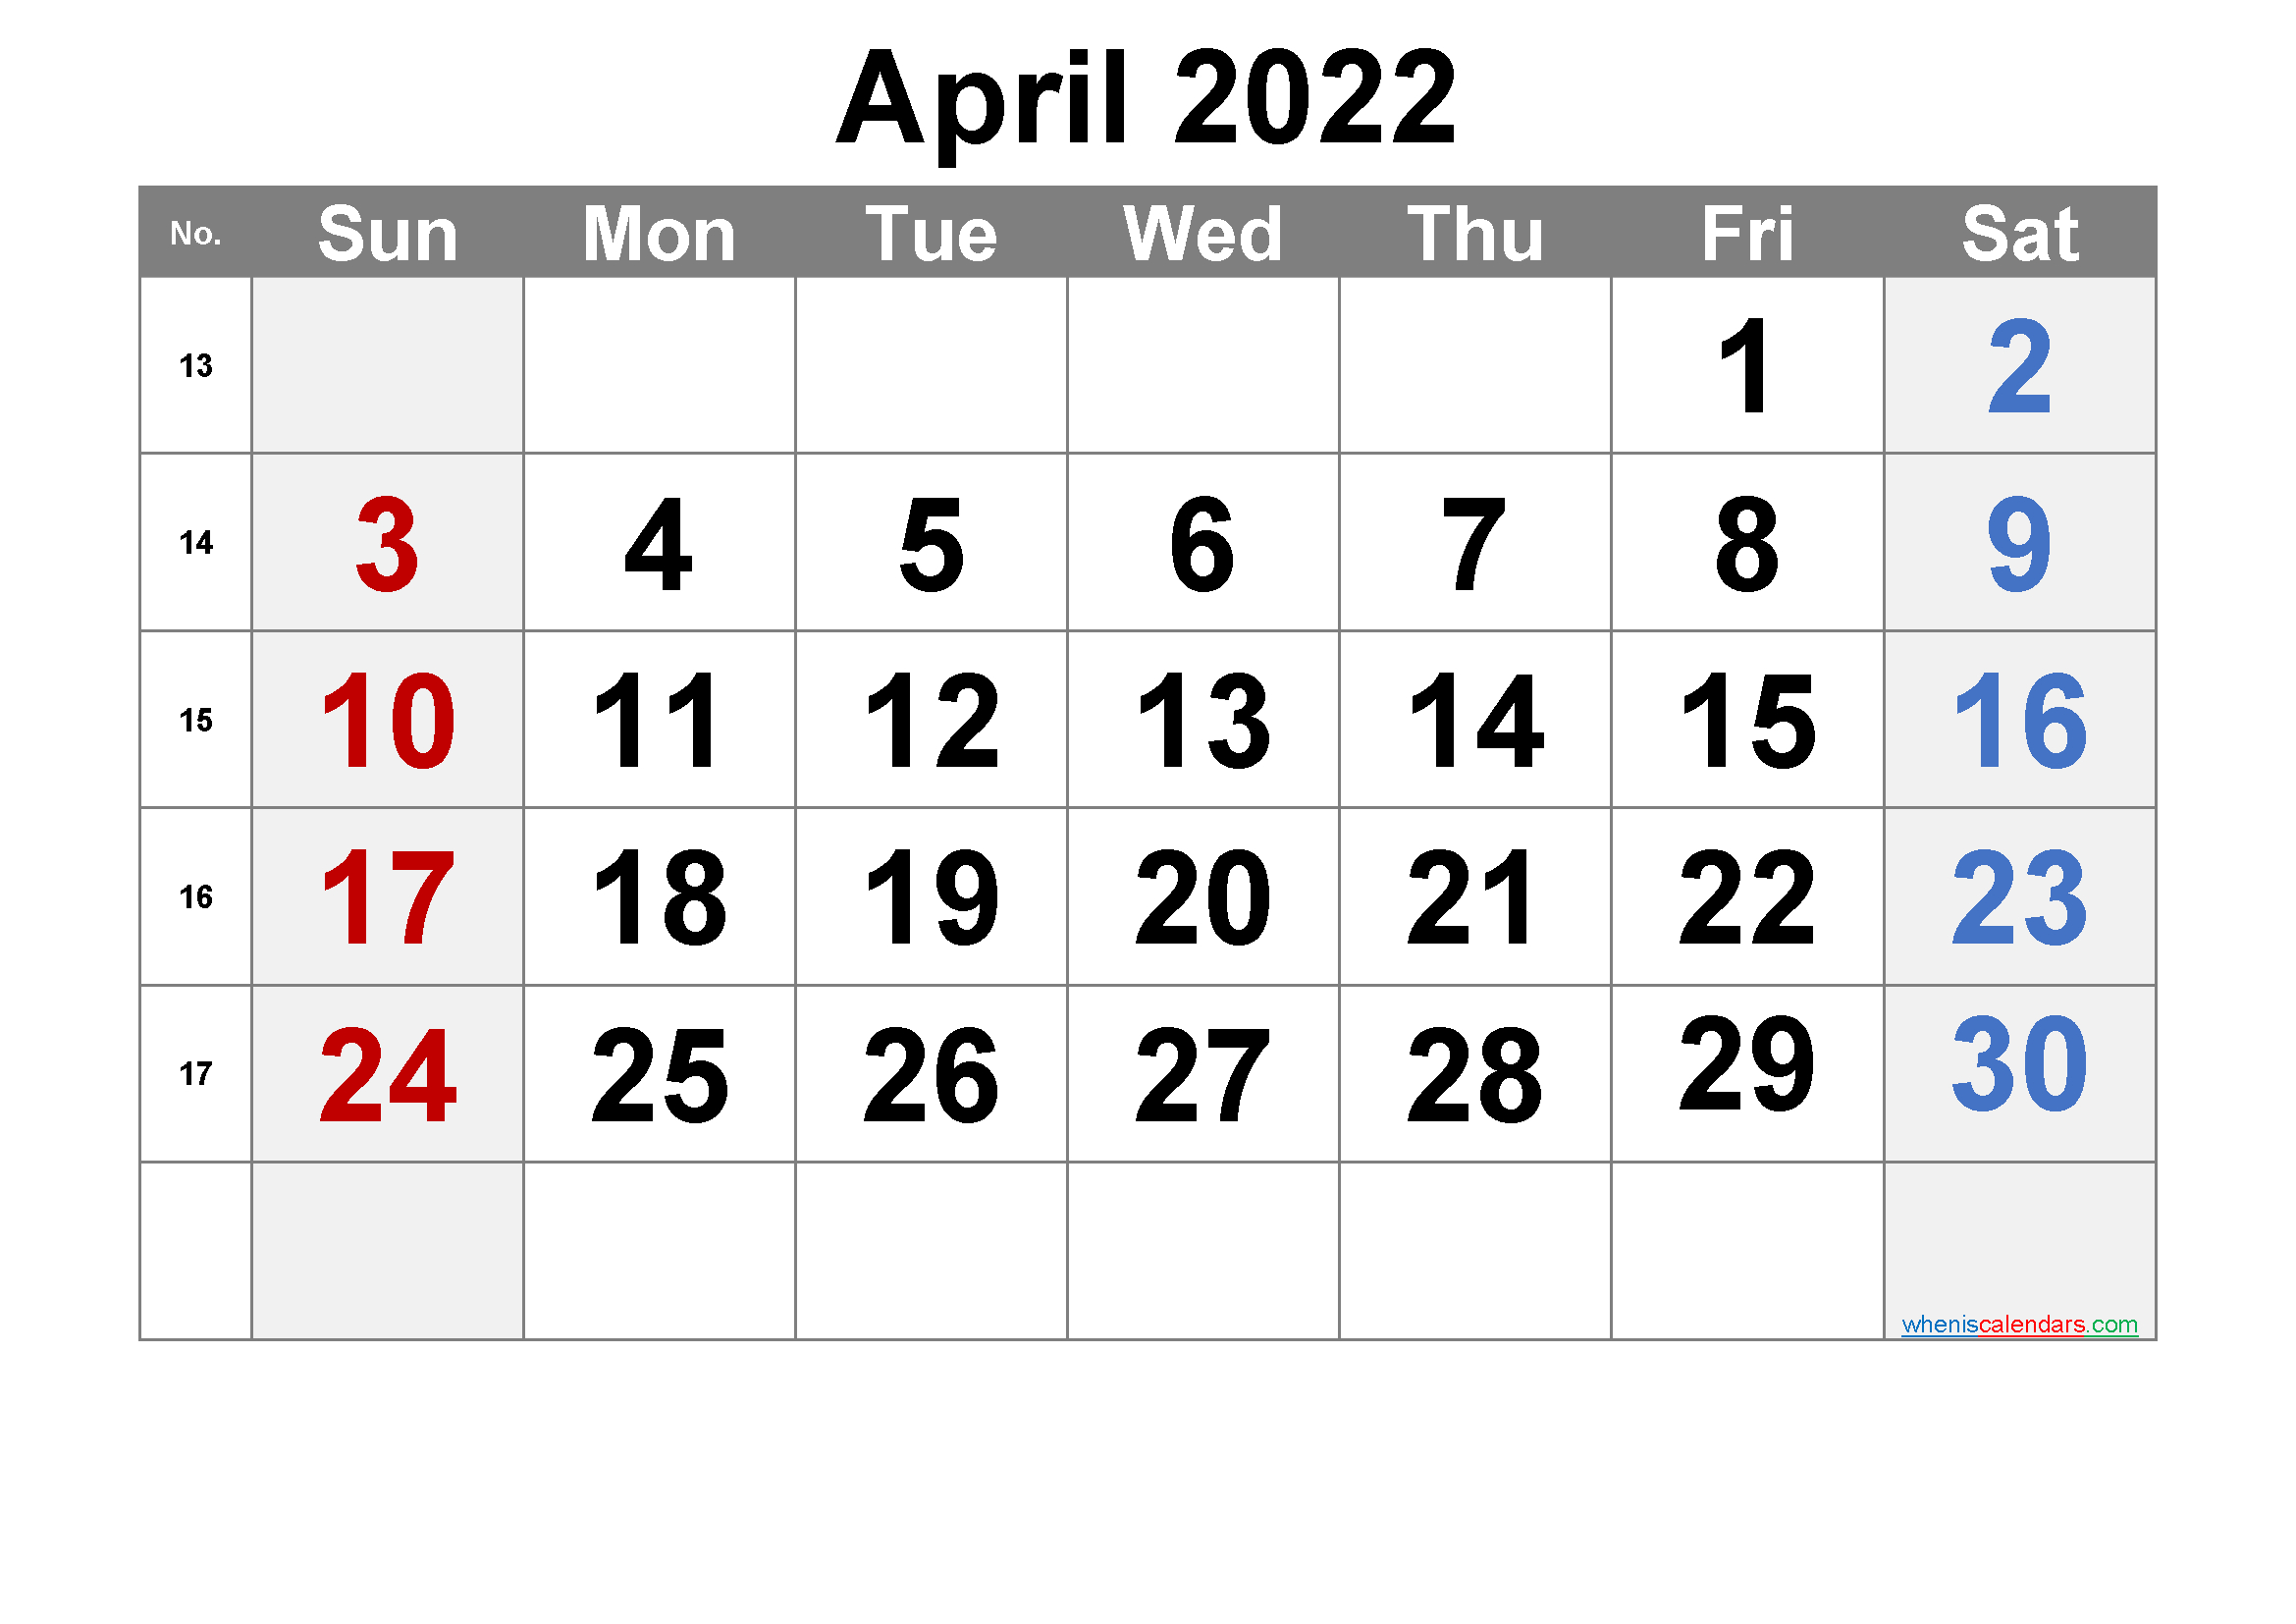 Free April 2022 Calendar With Week Numbers - Free intended for April 2022 Calendar To Print